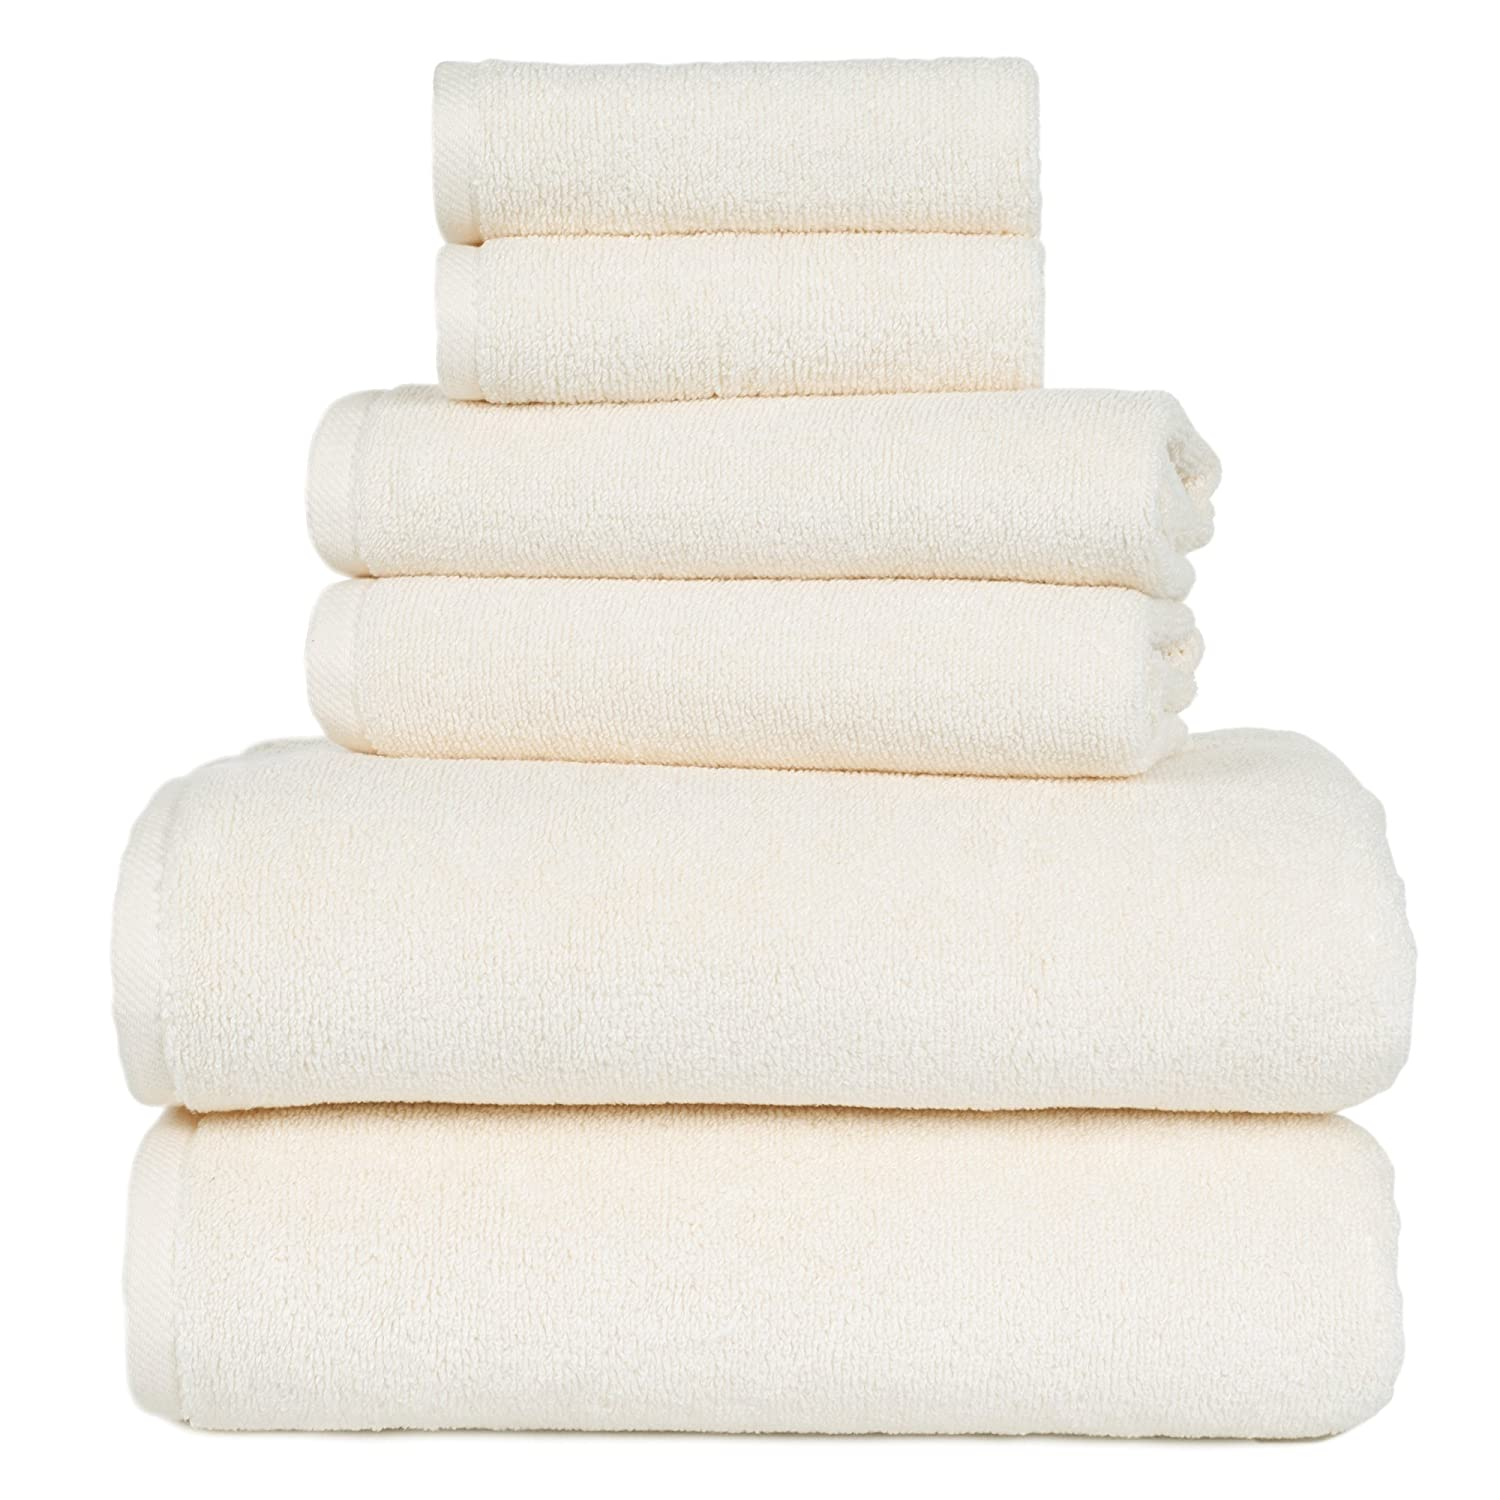 Set of 2 Ivory Zero Twist Cotton Soft and Absorbent Bath Towels